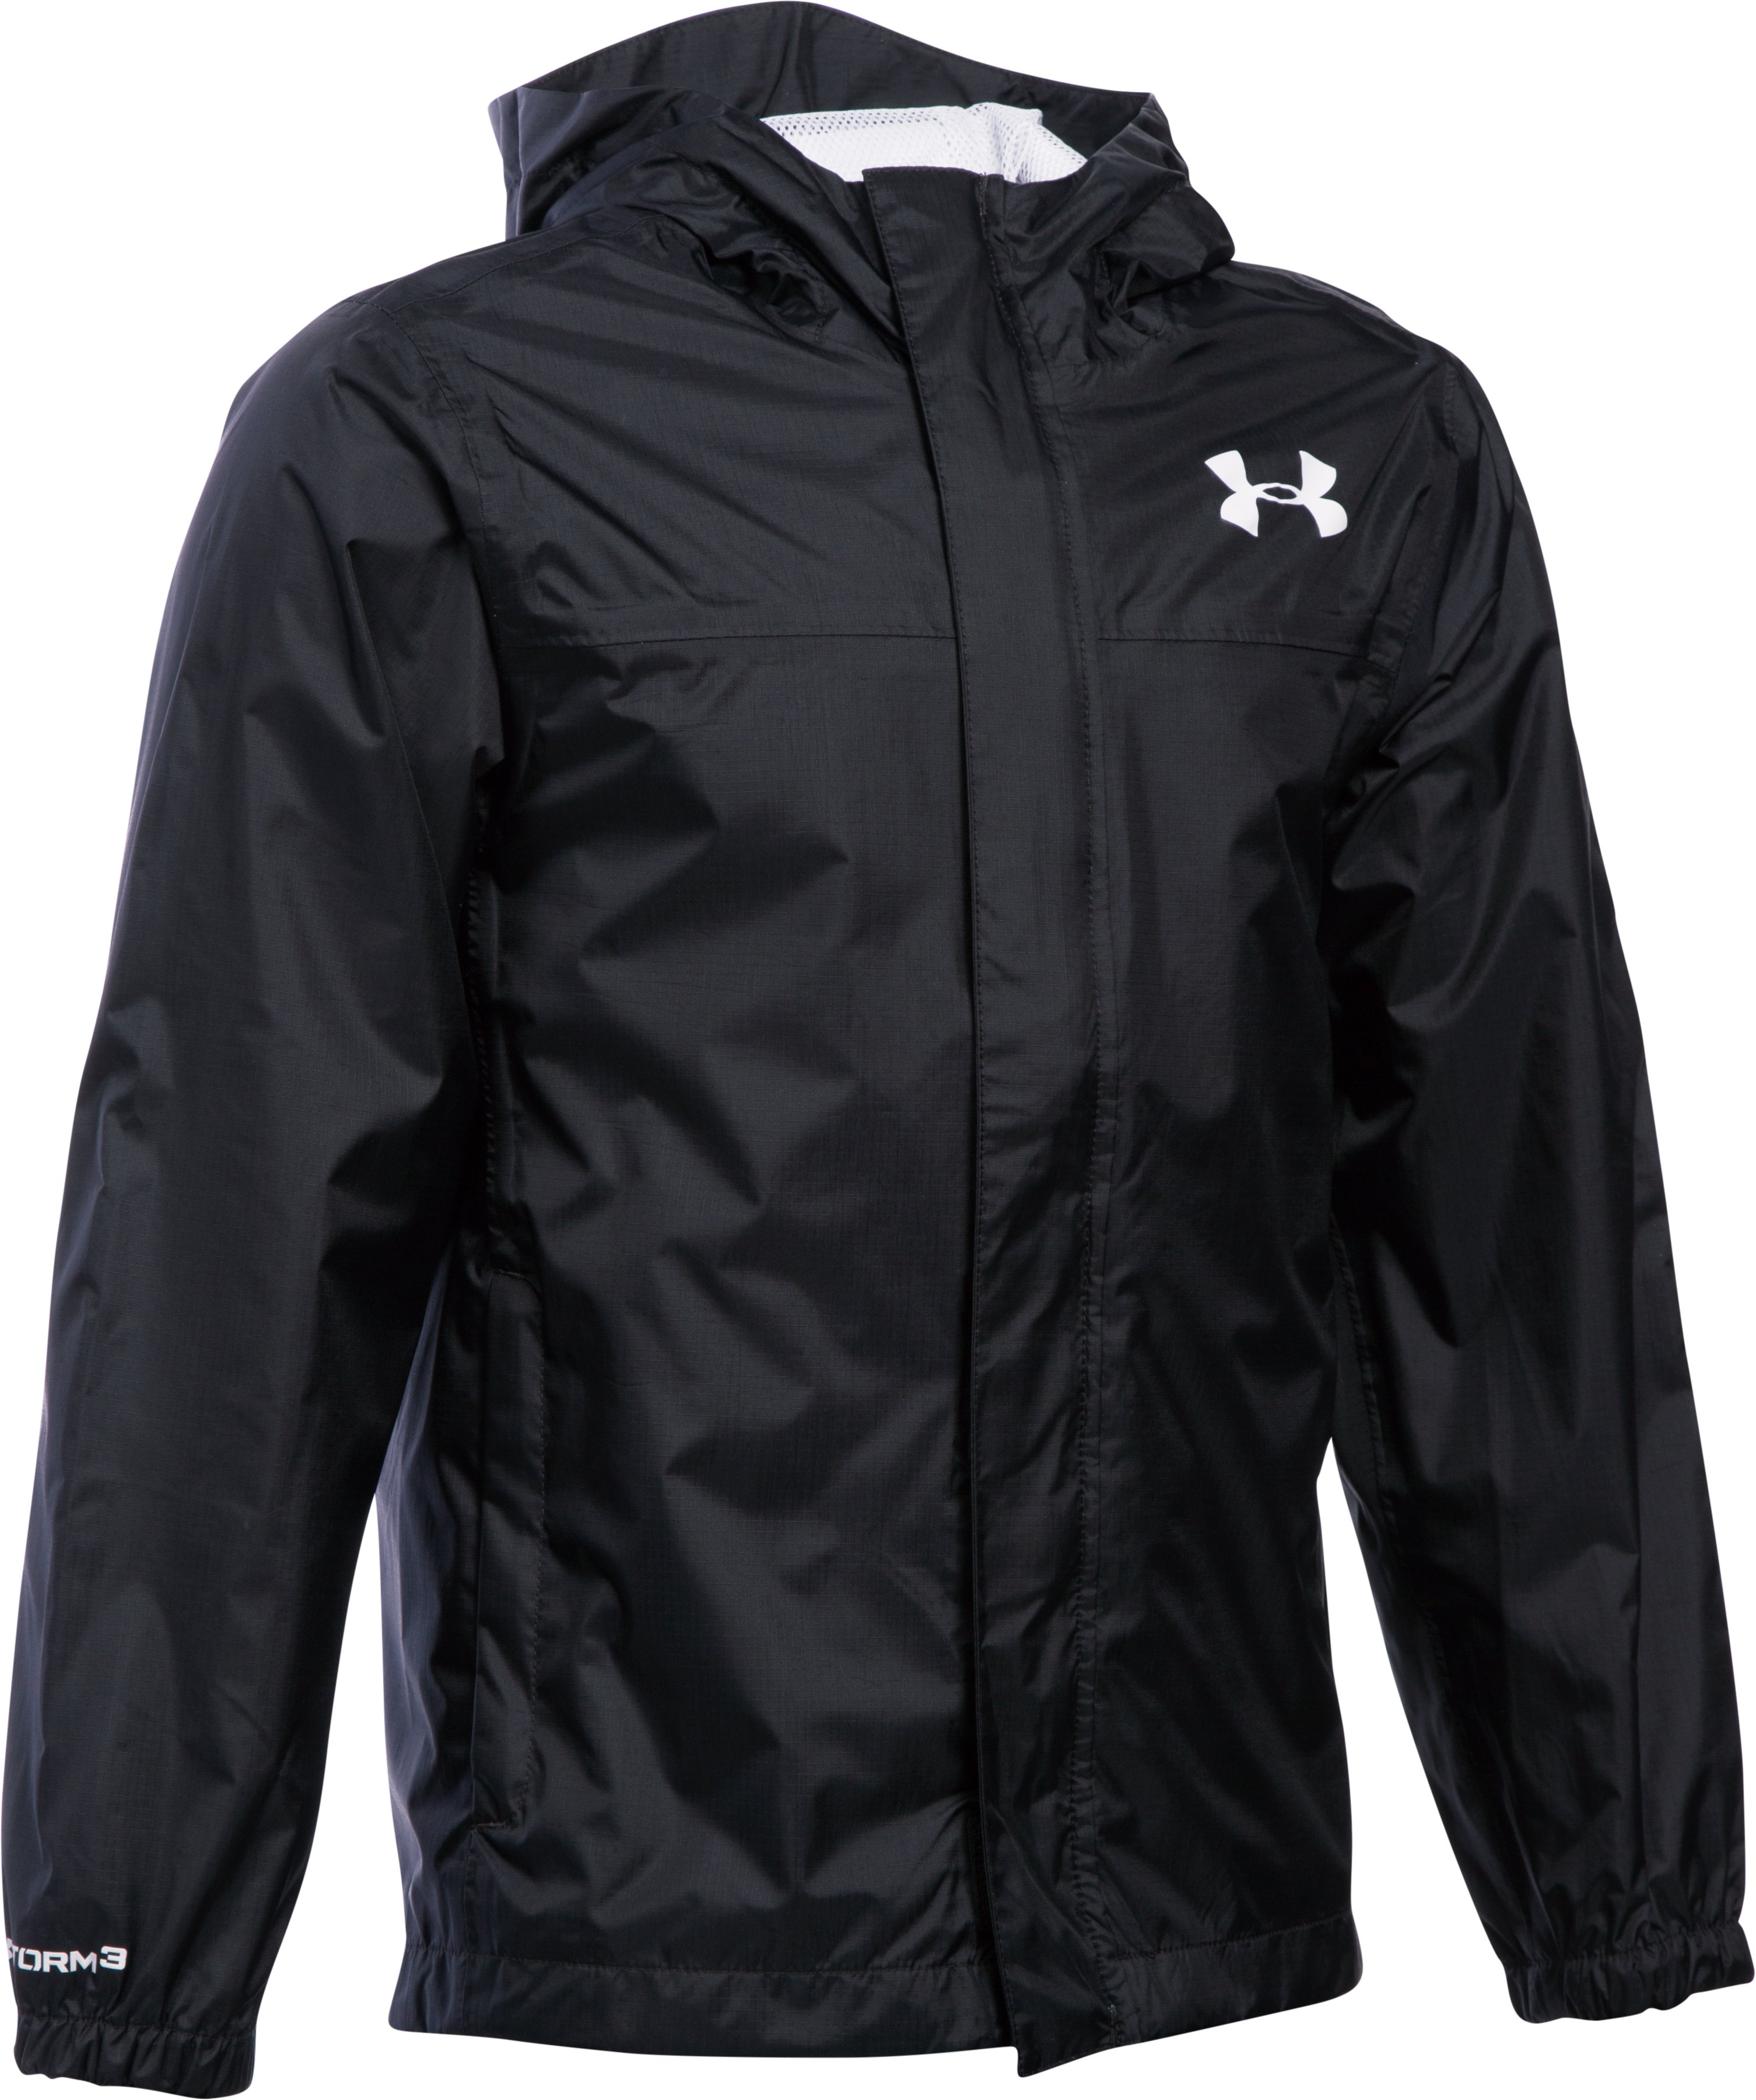 Boysu0026#39; UA Clean Up Piped Baseball Jacket | Under Armour US